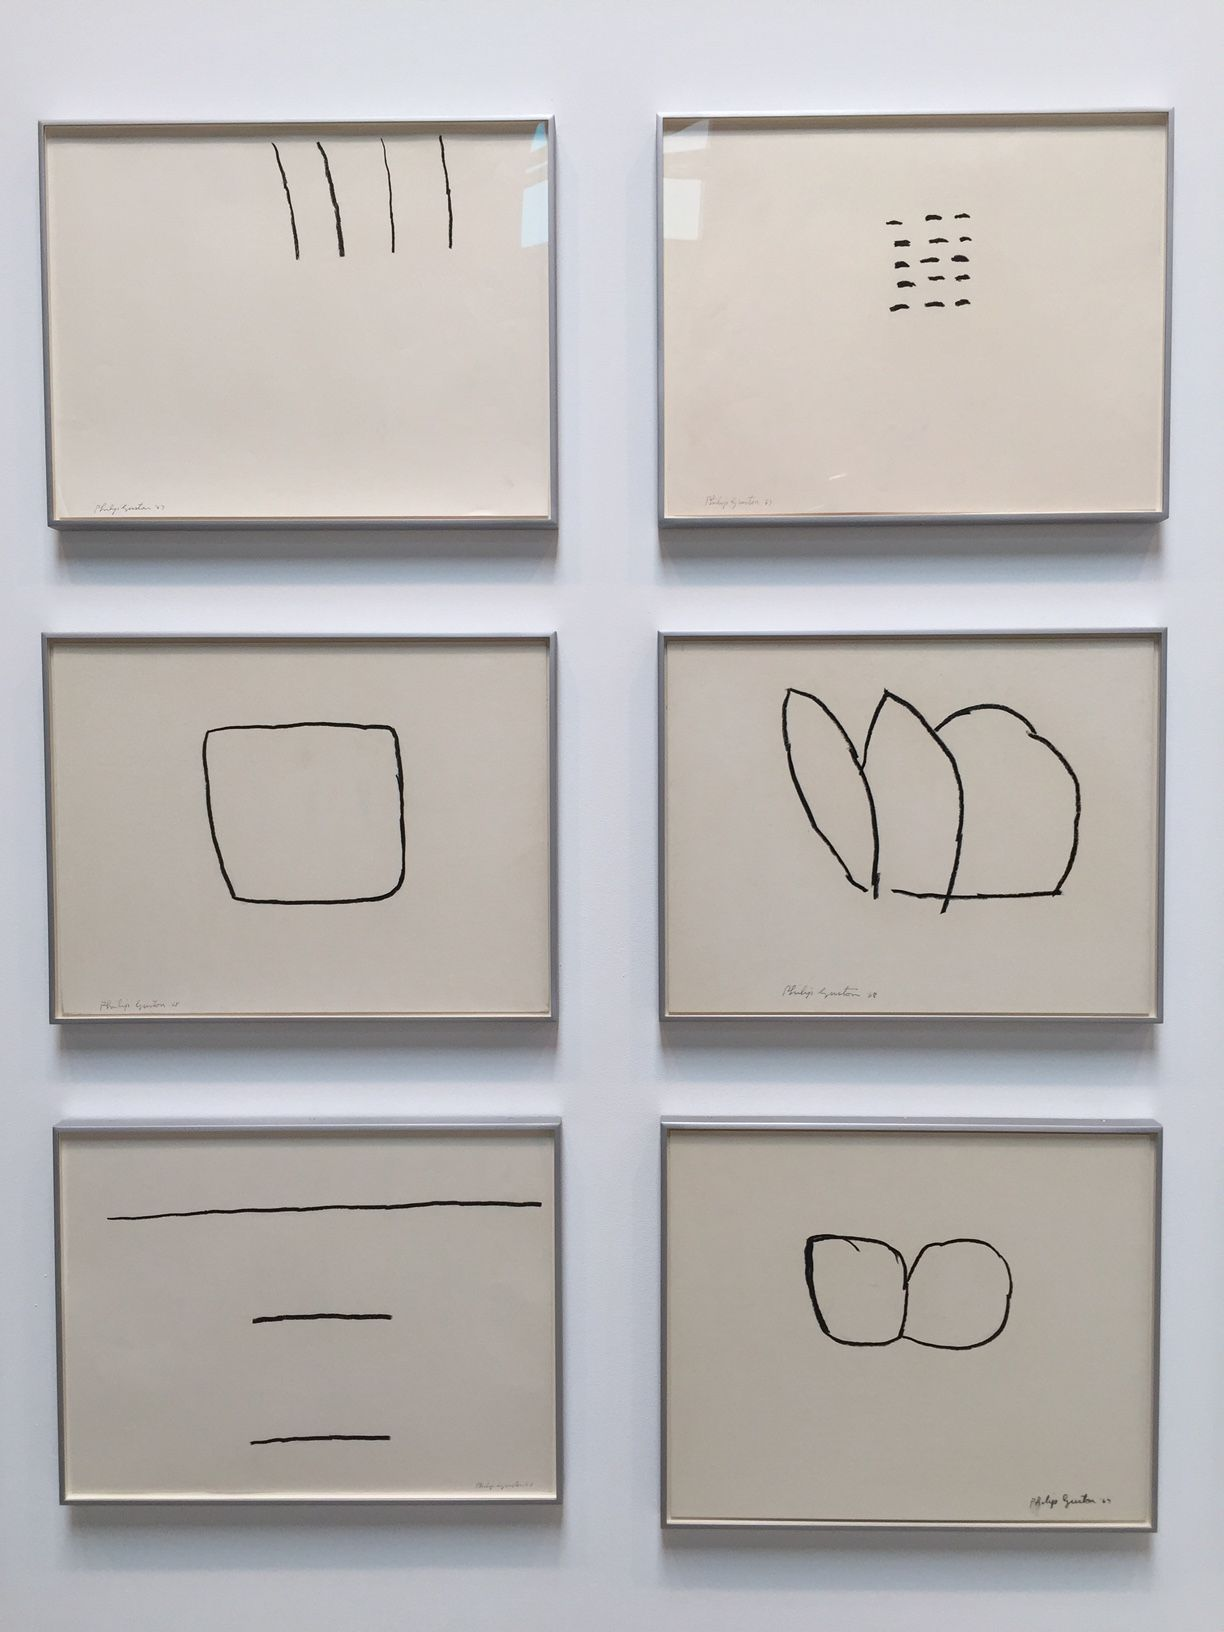 Philip Guston  drawings photographed at Hauser  Wirth gallery NYC 2016  Art inspiration